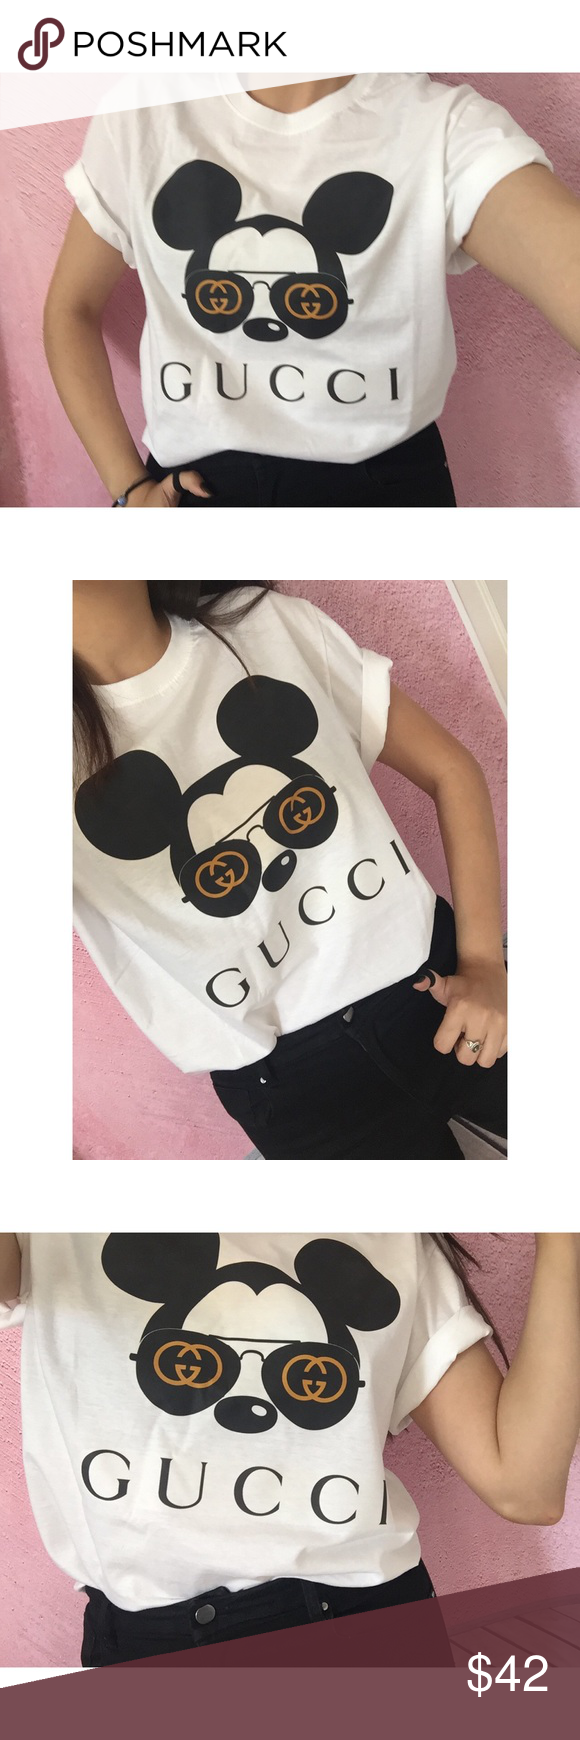 0e6f76ddb Gucci x Disney Mickey Mouse T-Shirt *Not authentic Ultra cute, cool ...